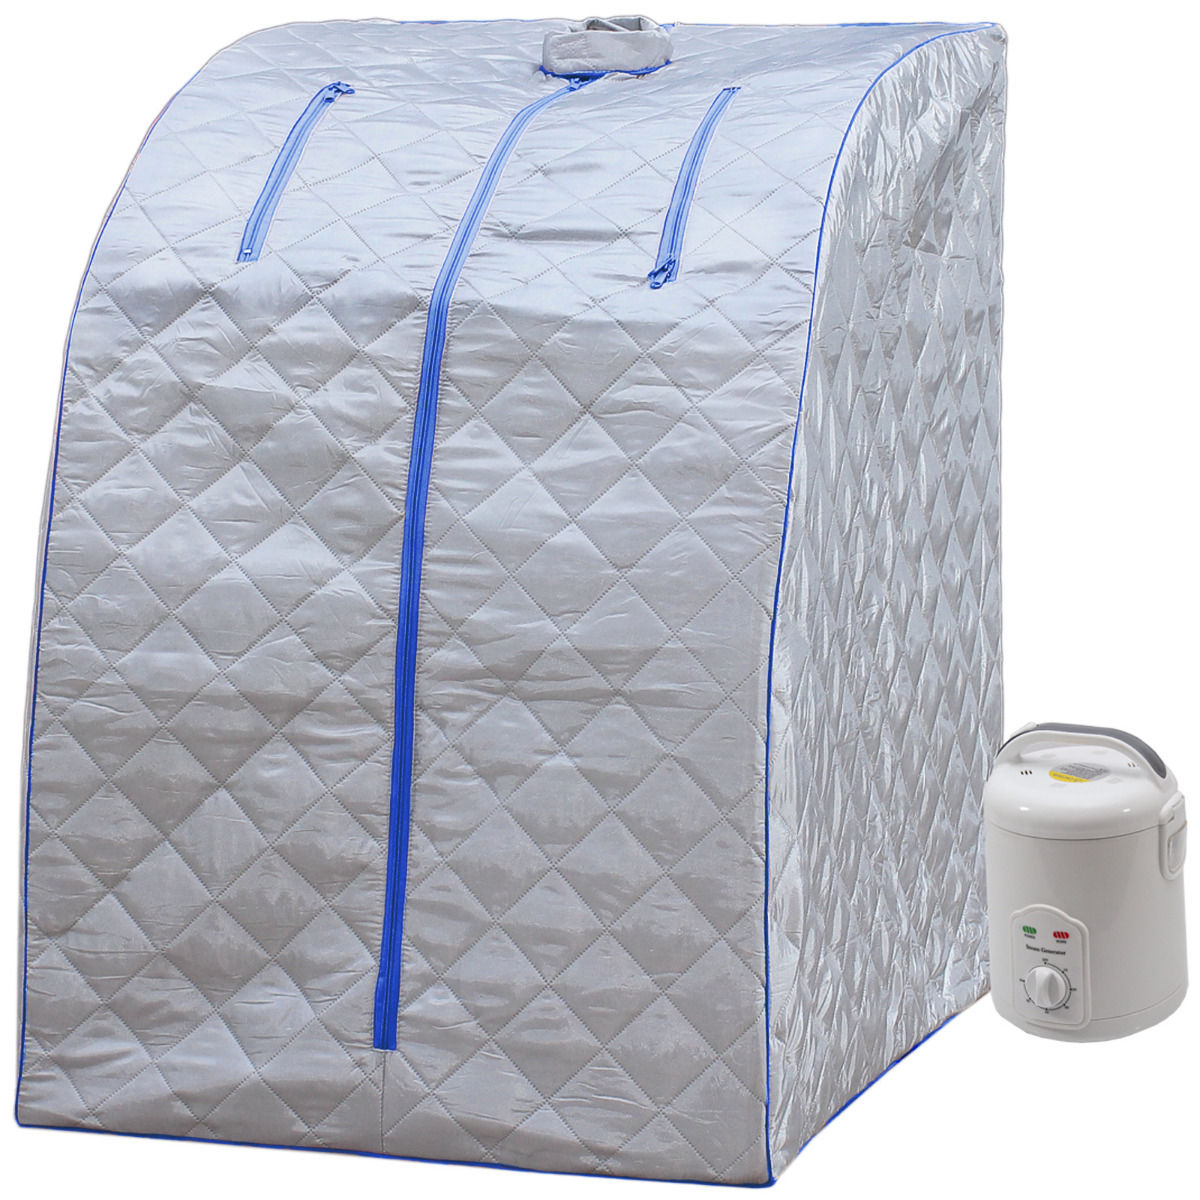 Durherm Portable Lightweight SPA Home Radiant Steam Sauna Blue Trim by